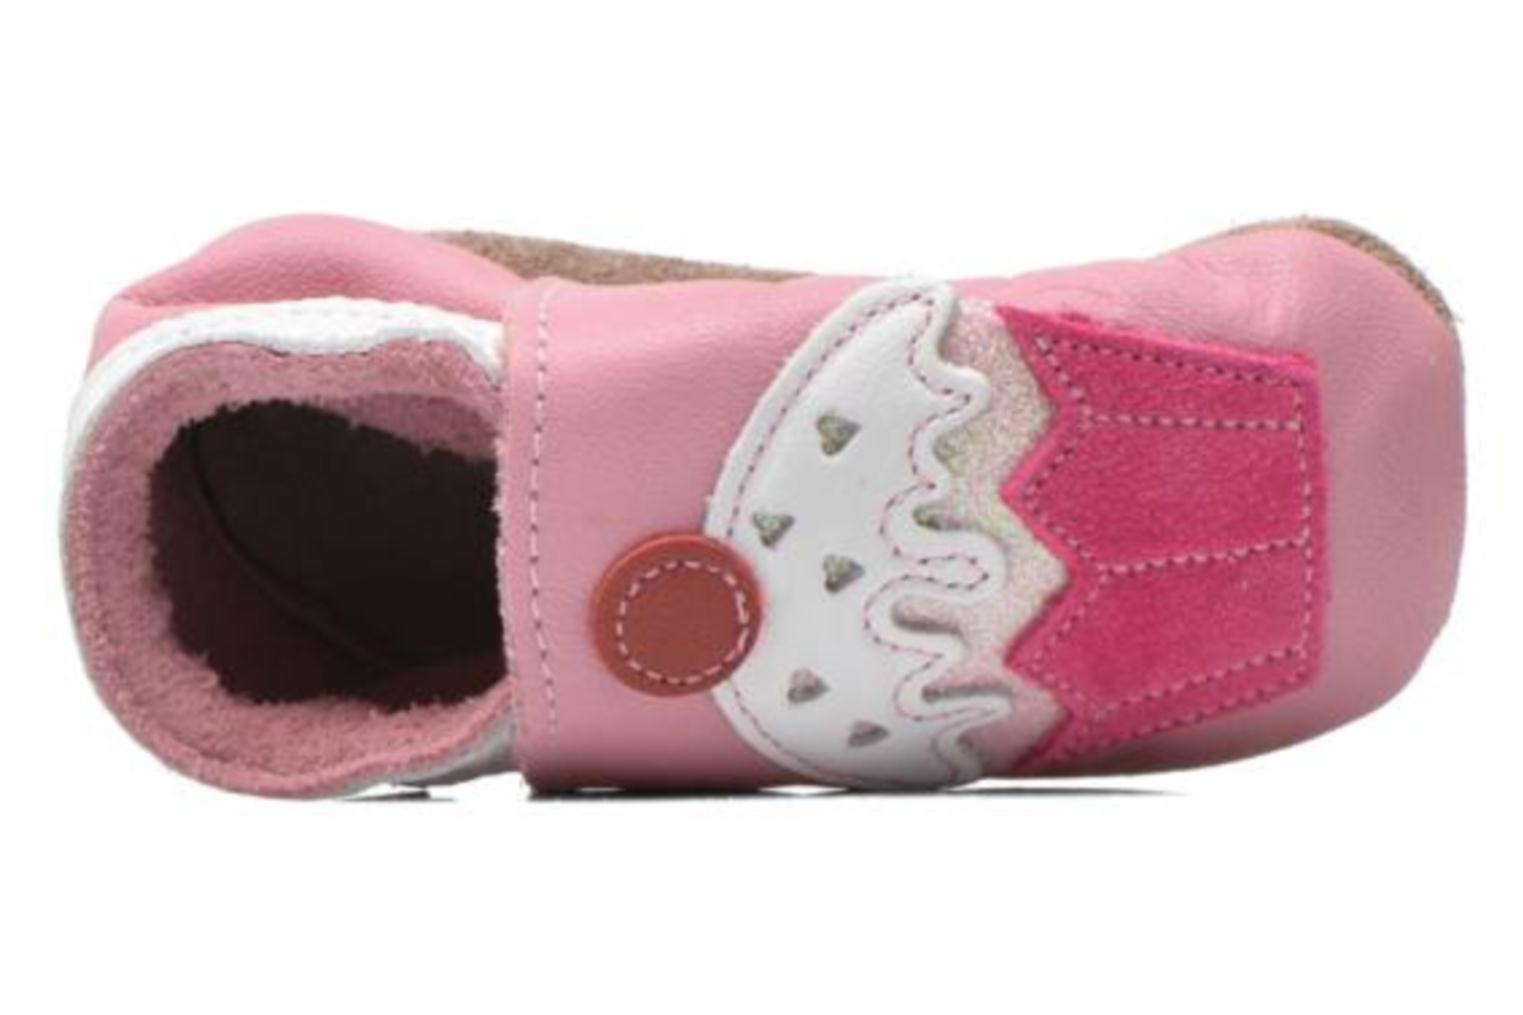 Chaussons Inch Blue Little Cupcake Rose vue gauche